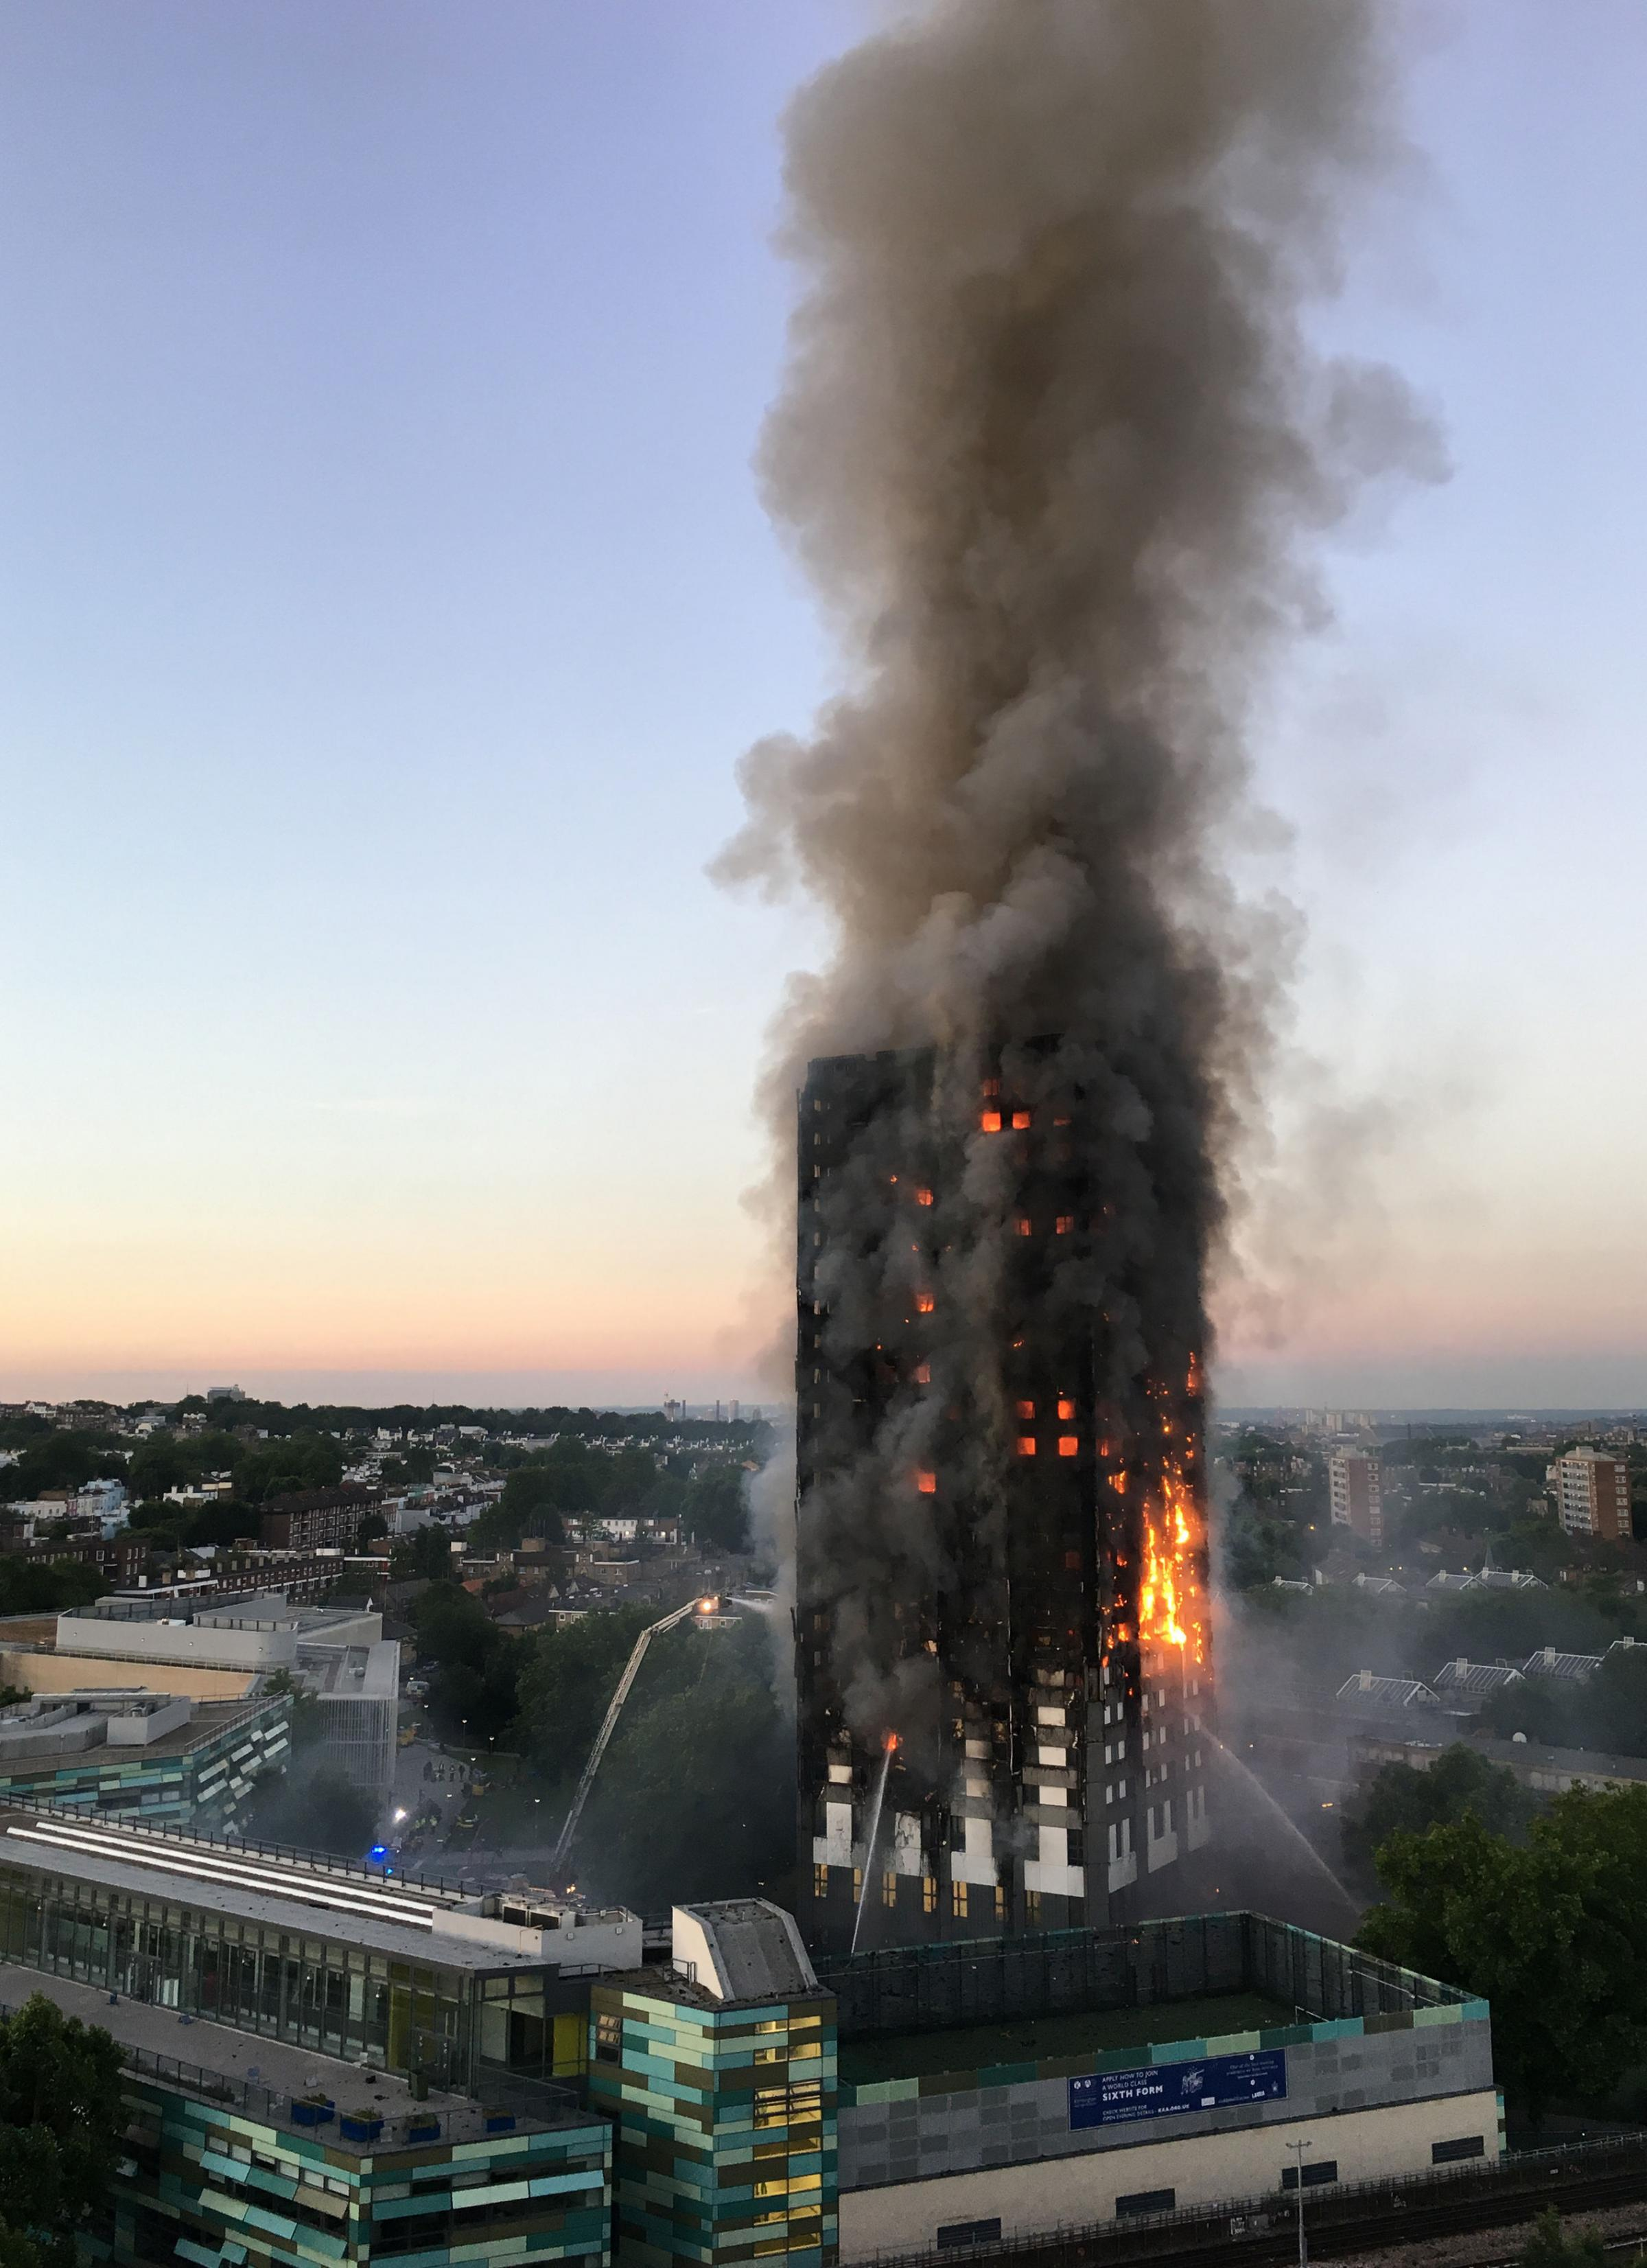 TRAGEDY: The Grenfell Tower fire disaster that claimed the lives of 72. Photo: Natalie Oxford/PA Wire.